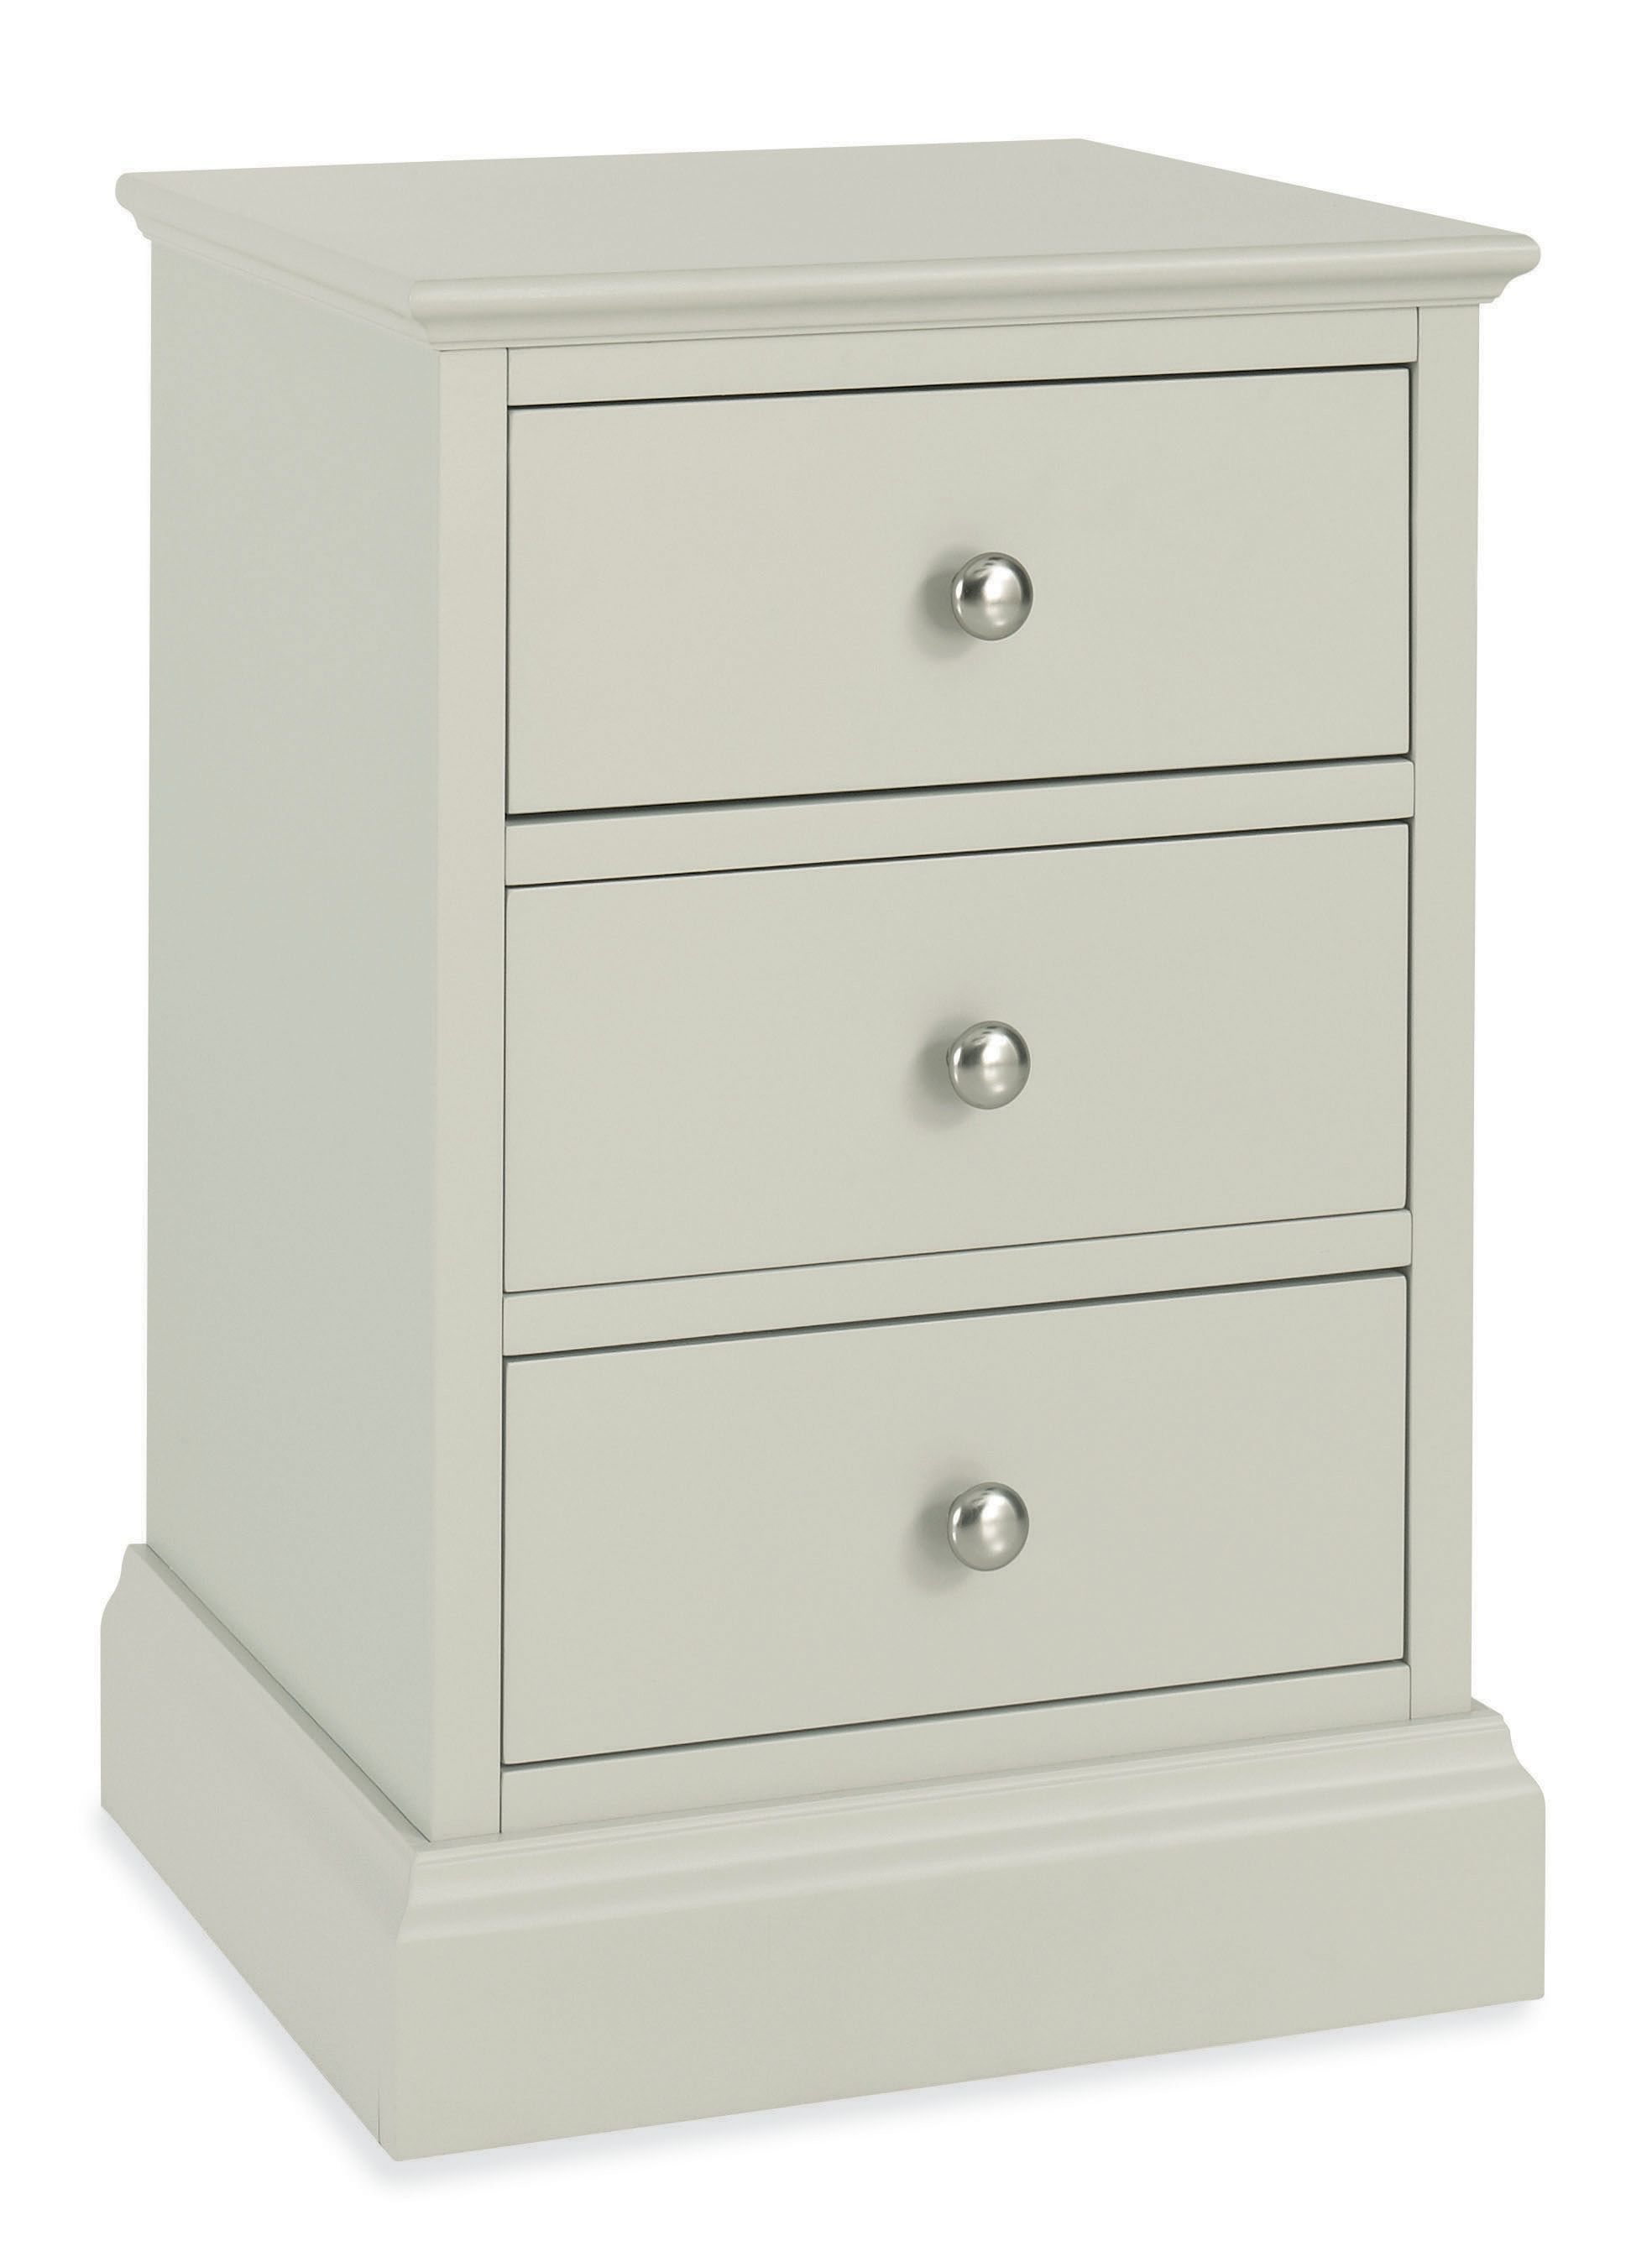 Cotton 3 drawer bedside chest